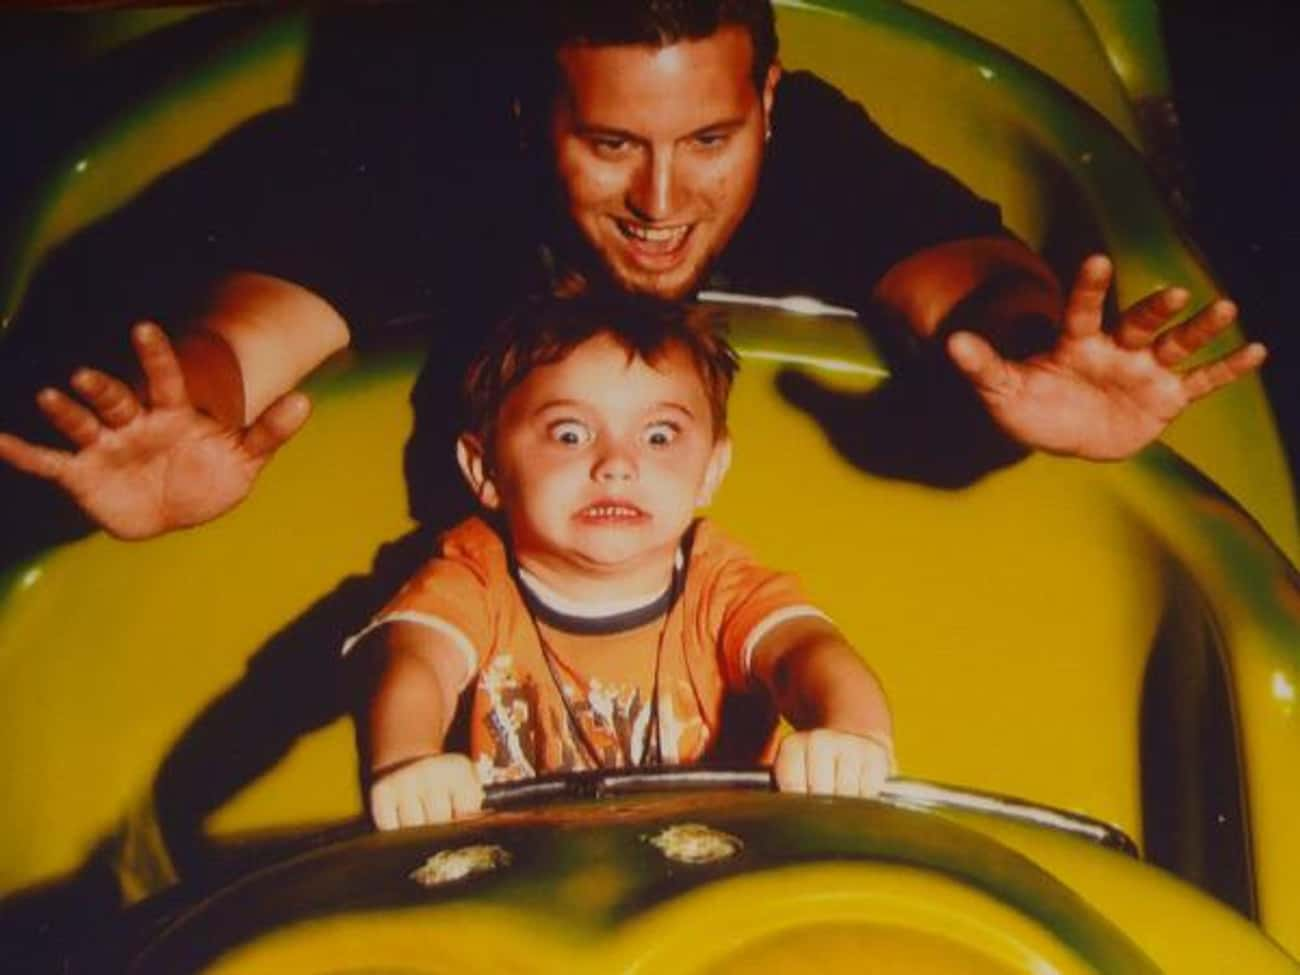 Having A Great Time is listed (or ranked) 4 on the list The 39 Greatest Rollercoaster Pics Ever Taken